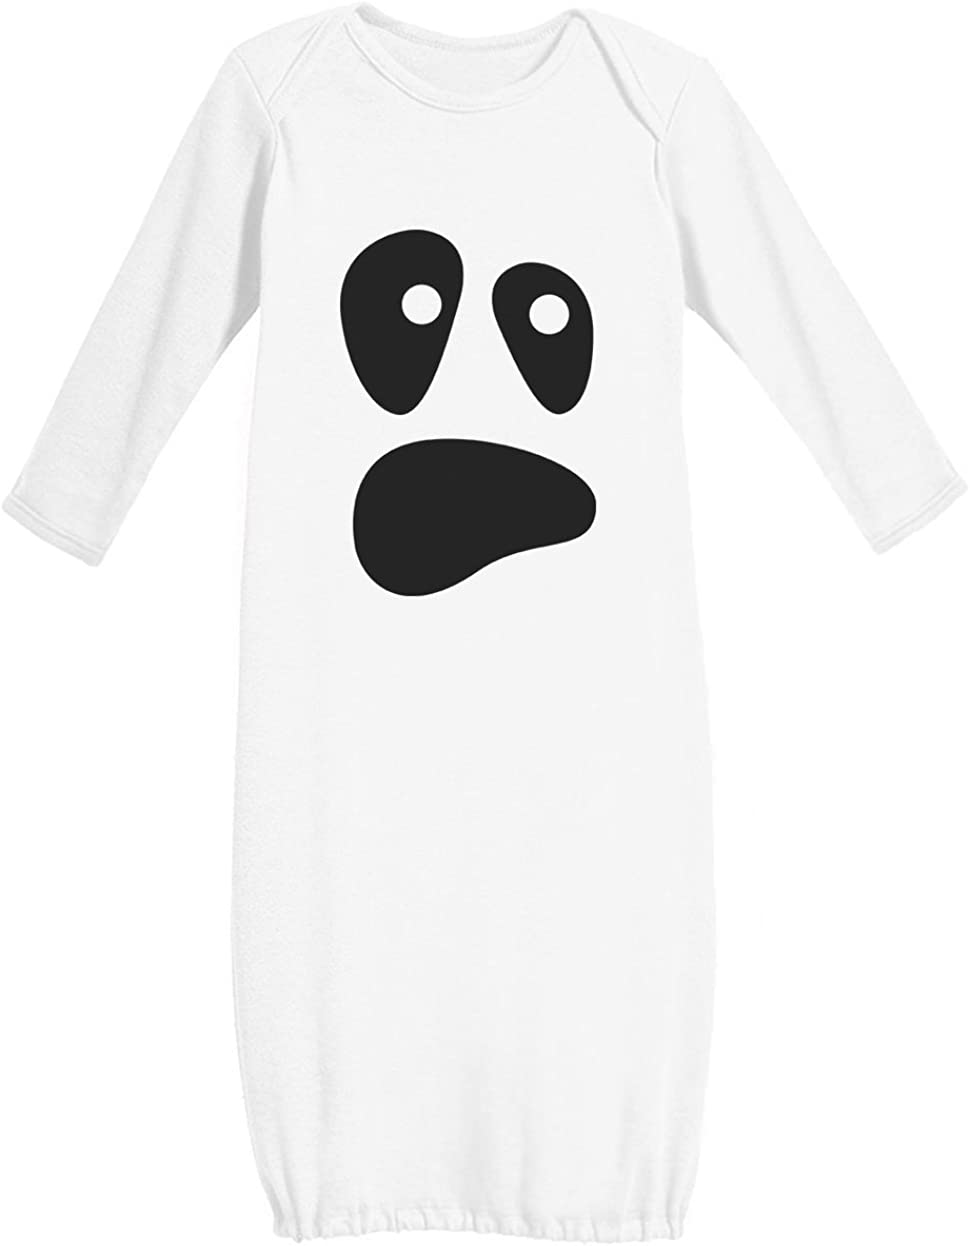 Baby Ghost Halloween Costume Outfit Cute Infant Bodysuit Baby Bodysuit Gift Idea